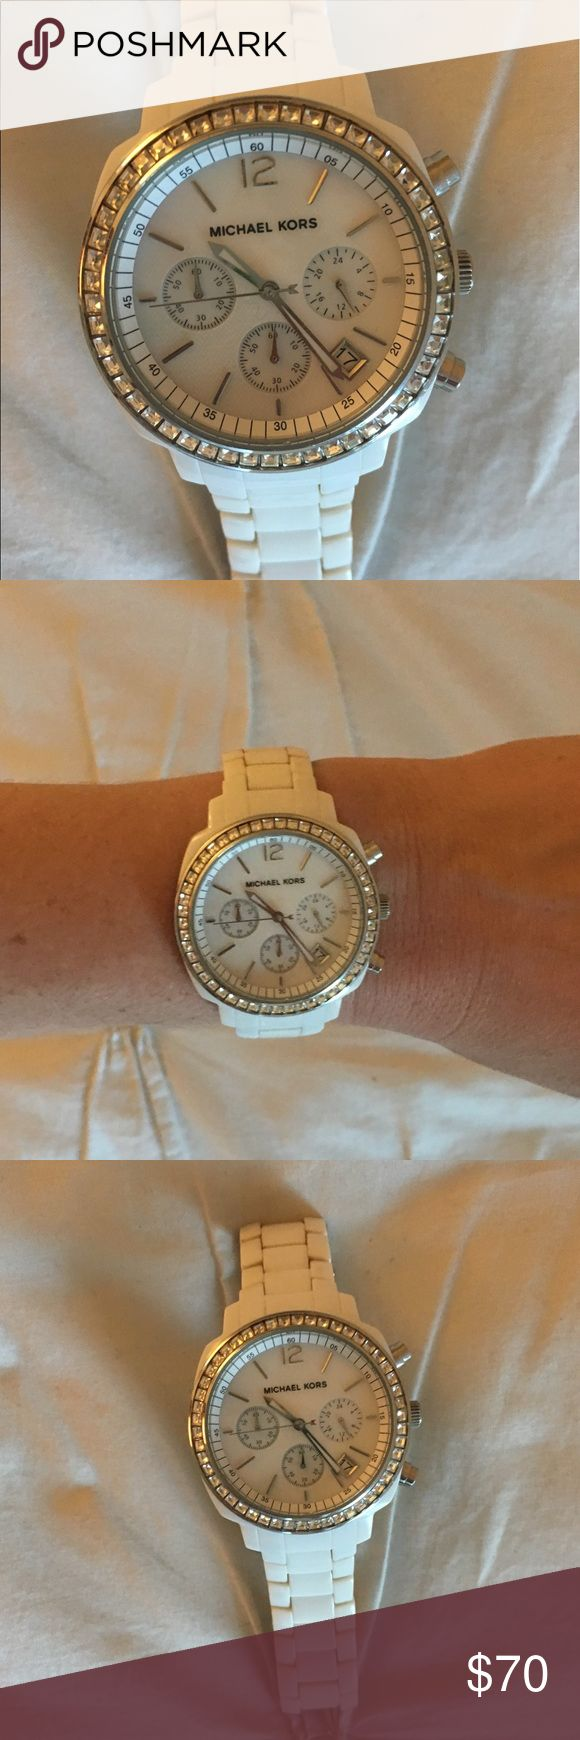 White Michael Kors Watch In excellent condition, needs a new watch battery but works great. For small wrists. Let me know if you have any questions! KORS Michael Kors Accessories Watches